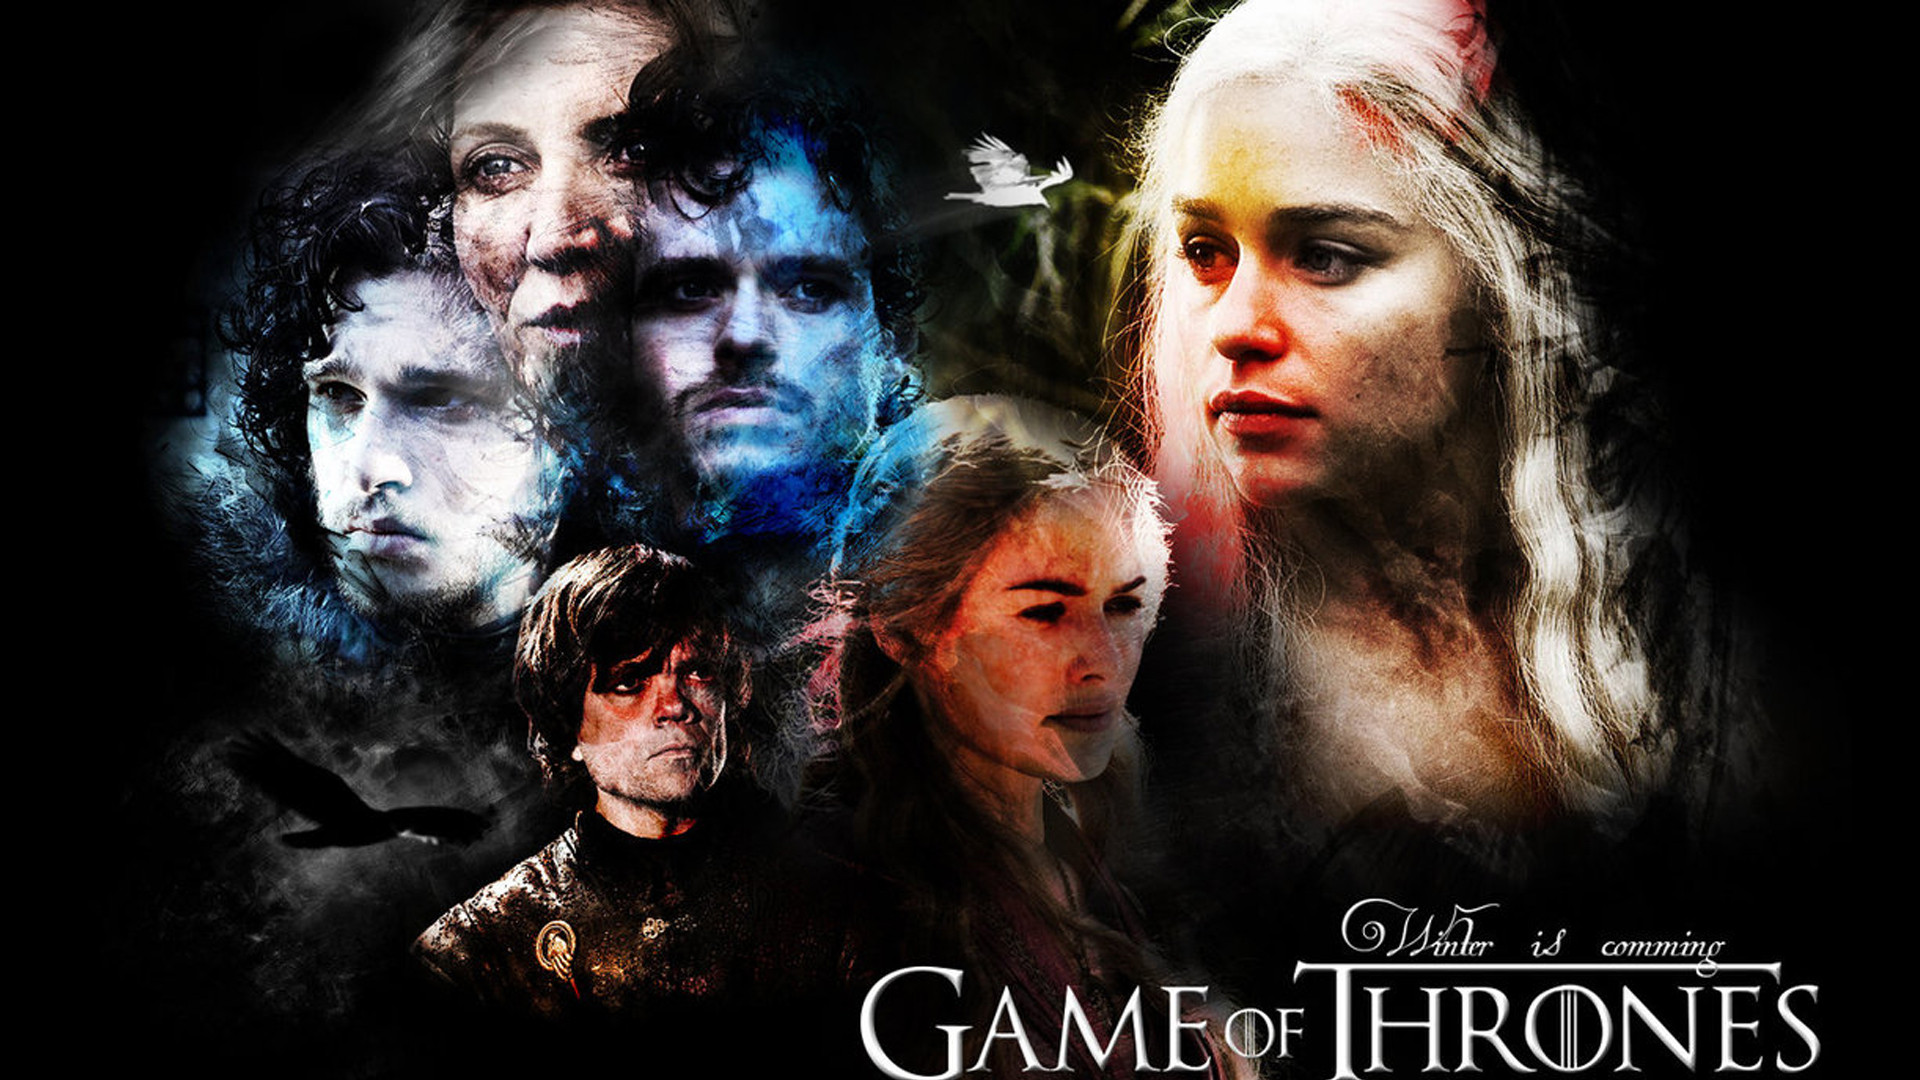 download Game Of Thrones Season 3 Wallpapers [1920x1080] for 1920x1080